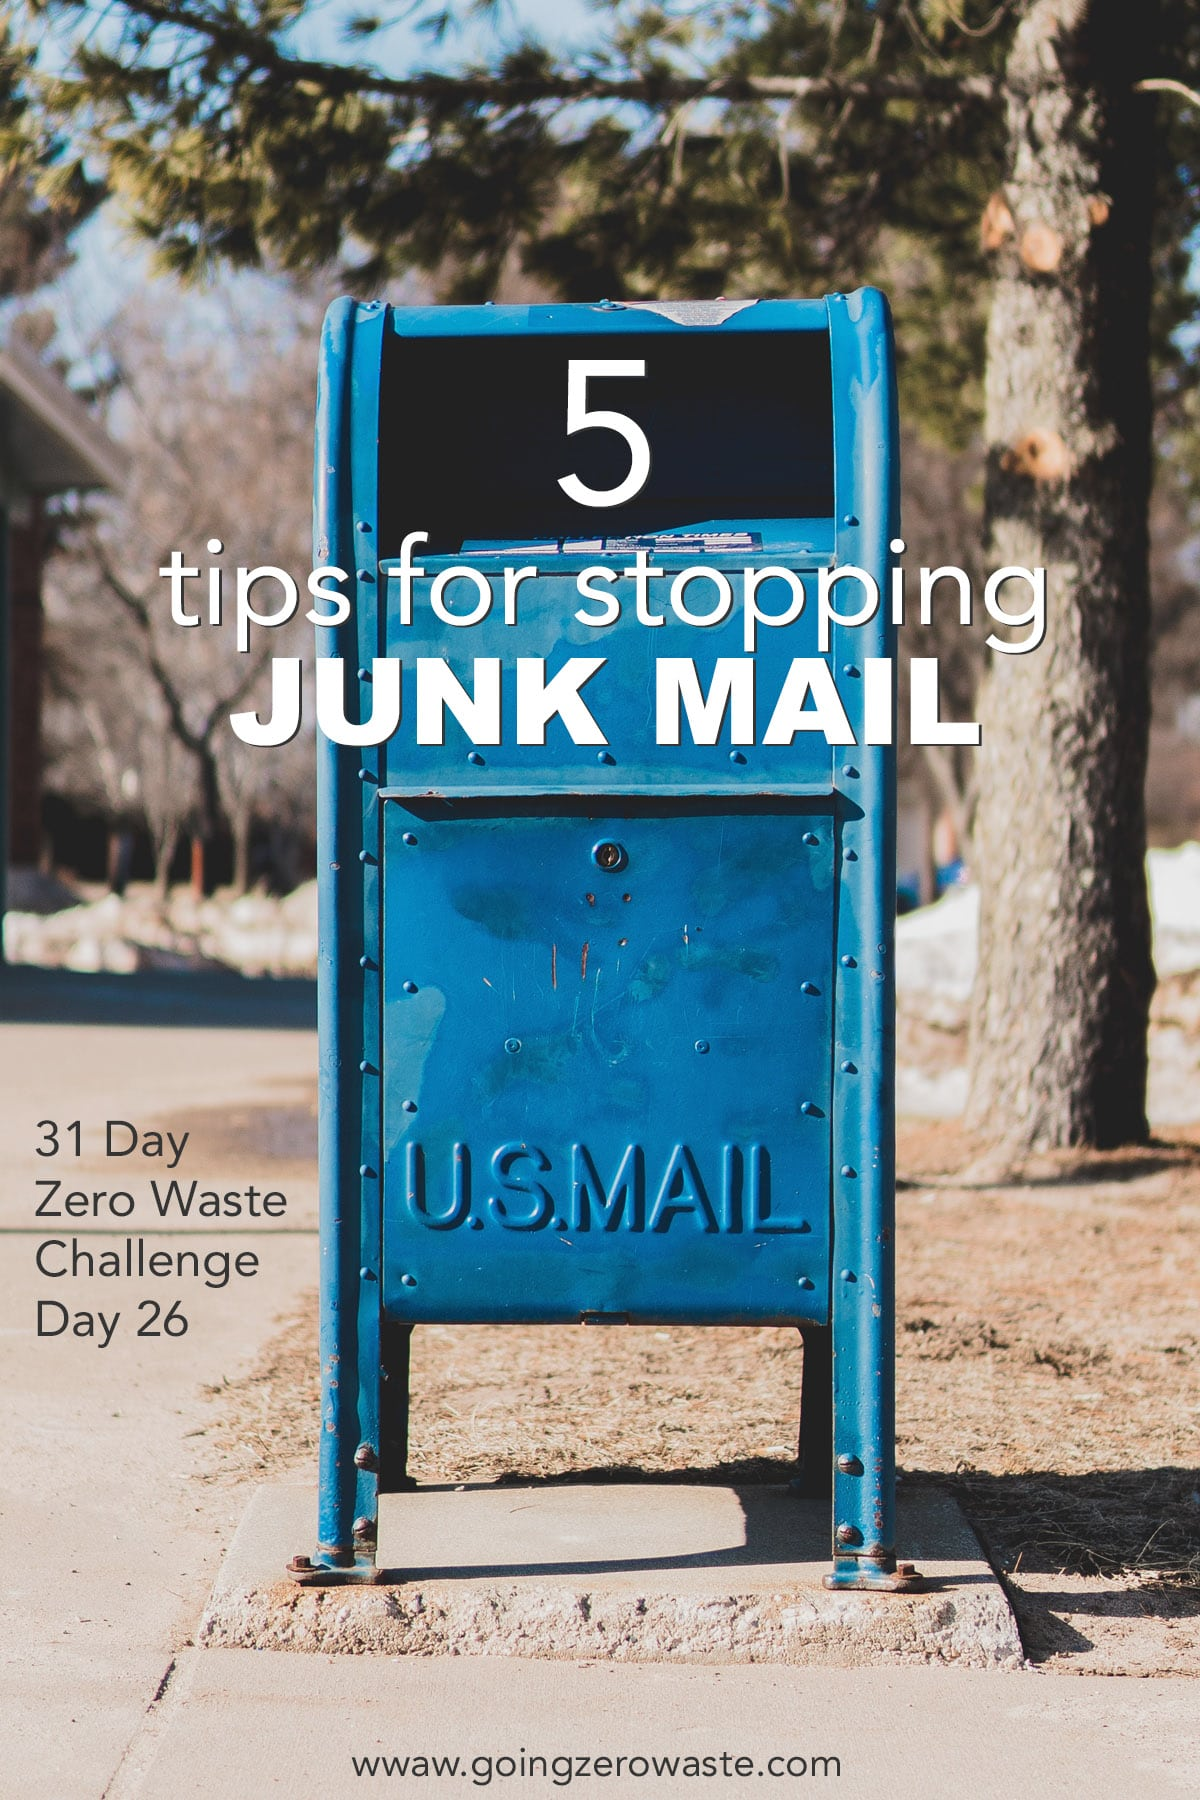 How to Stop Junk Mail - Day 26 of the Zero Waste Challenge